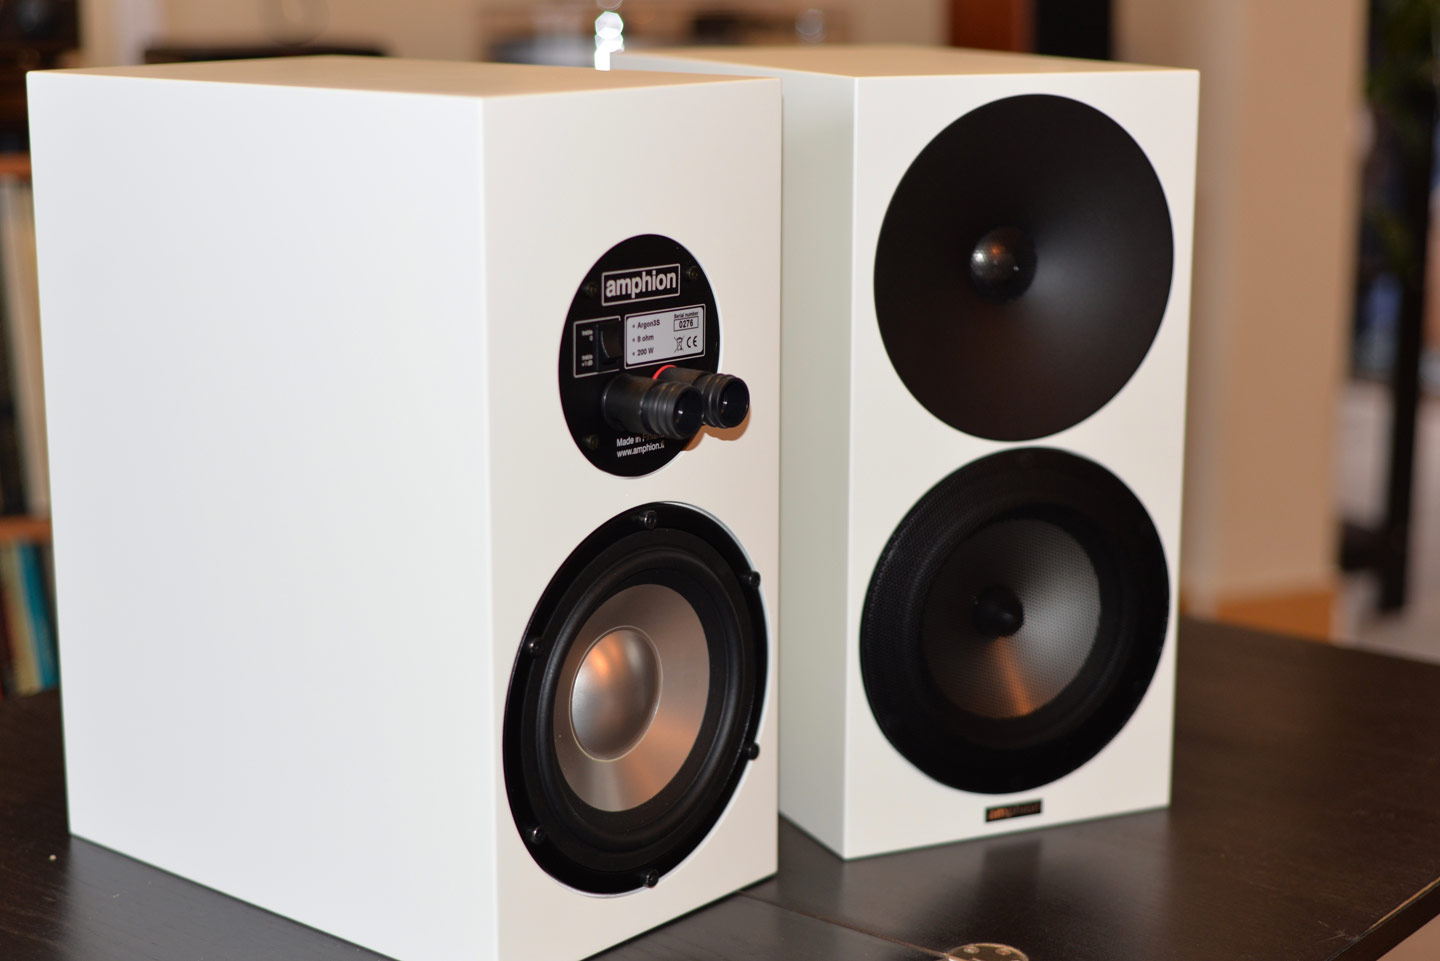 enceintes AMPHION ARGON 3S